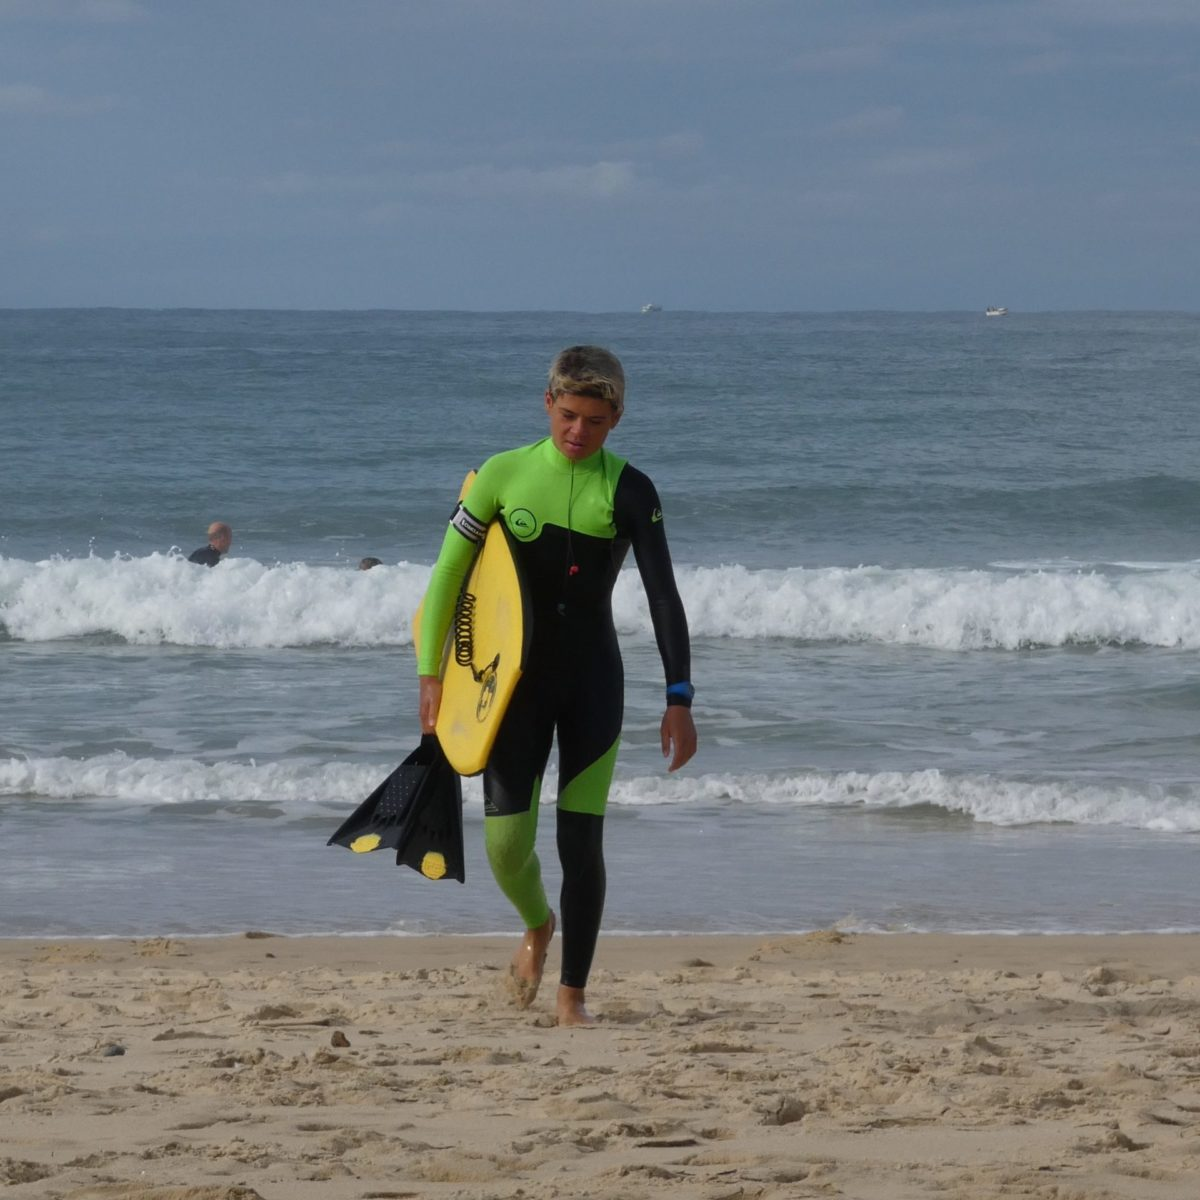 https://www.ligue-bretagne-surf.bzh/wp-content/uploads/2020/05/Maxime-Bourgine-scaled-e1590389431522-1200x1200.jpg